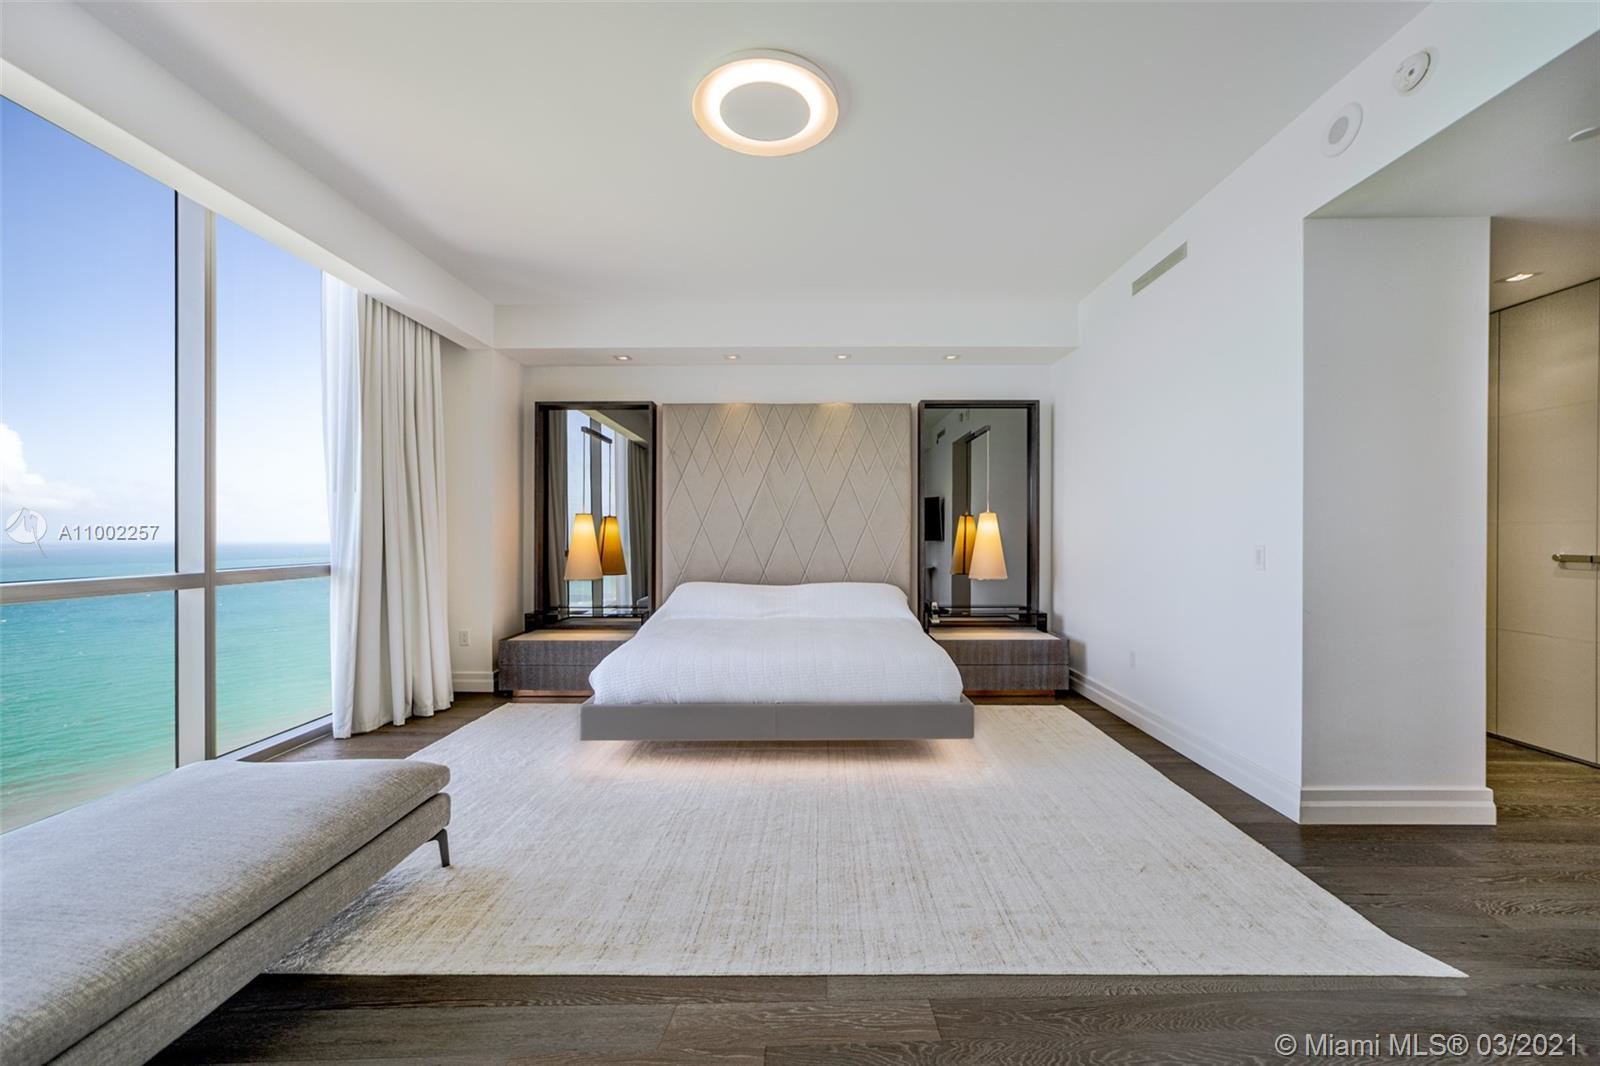 17749 Collins Ave #2901, Sunny Isles, FL 33160 - #: A11002257